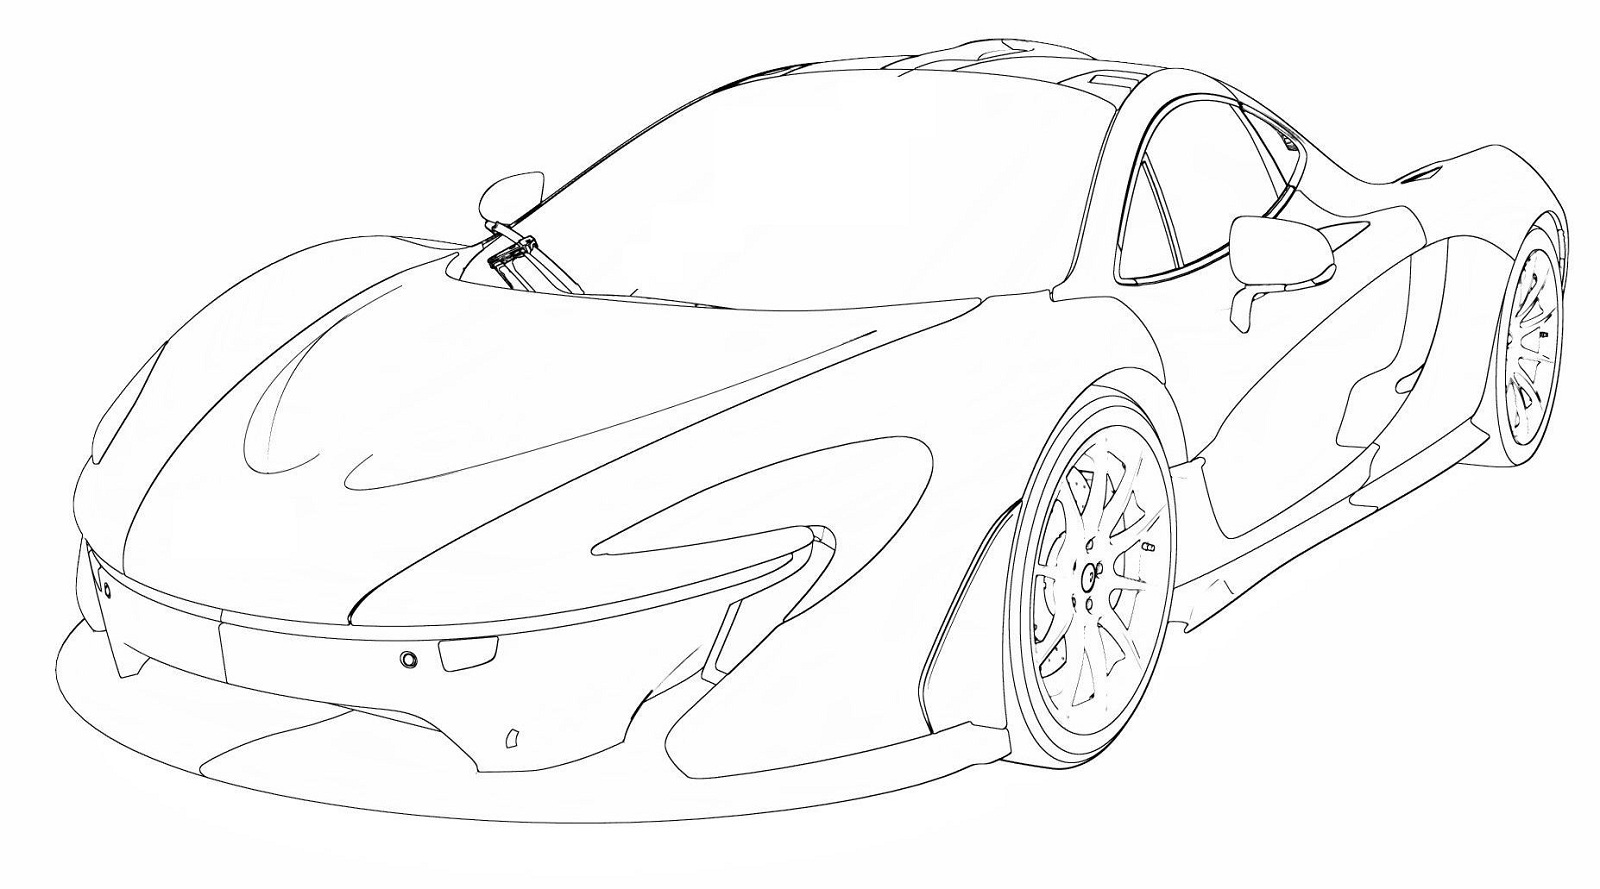 mclaren f1 coloring pages - photo#13